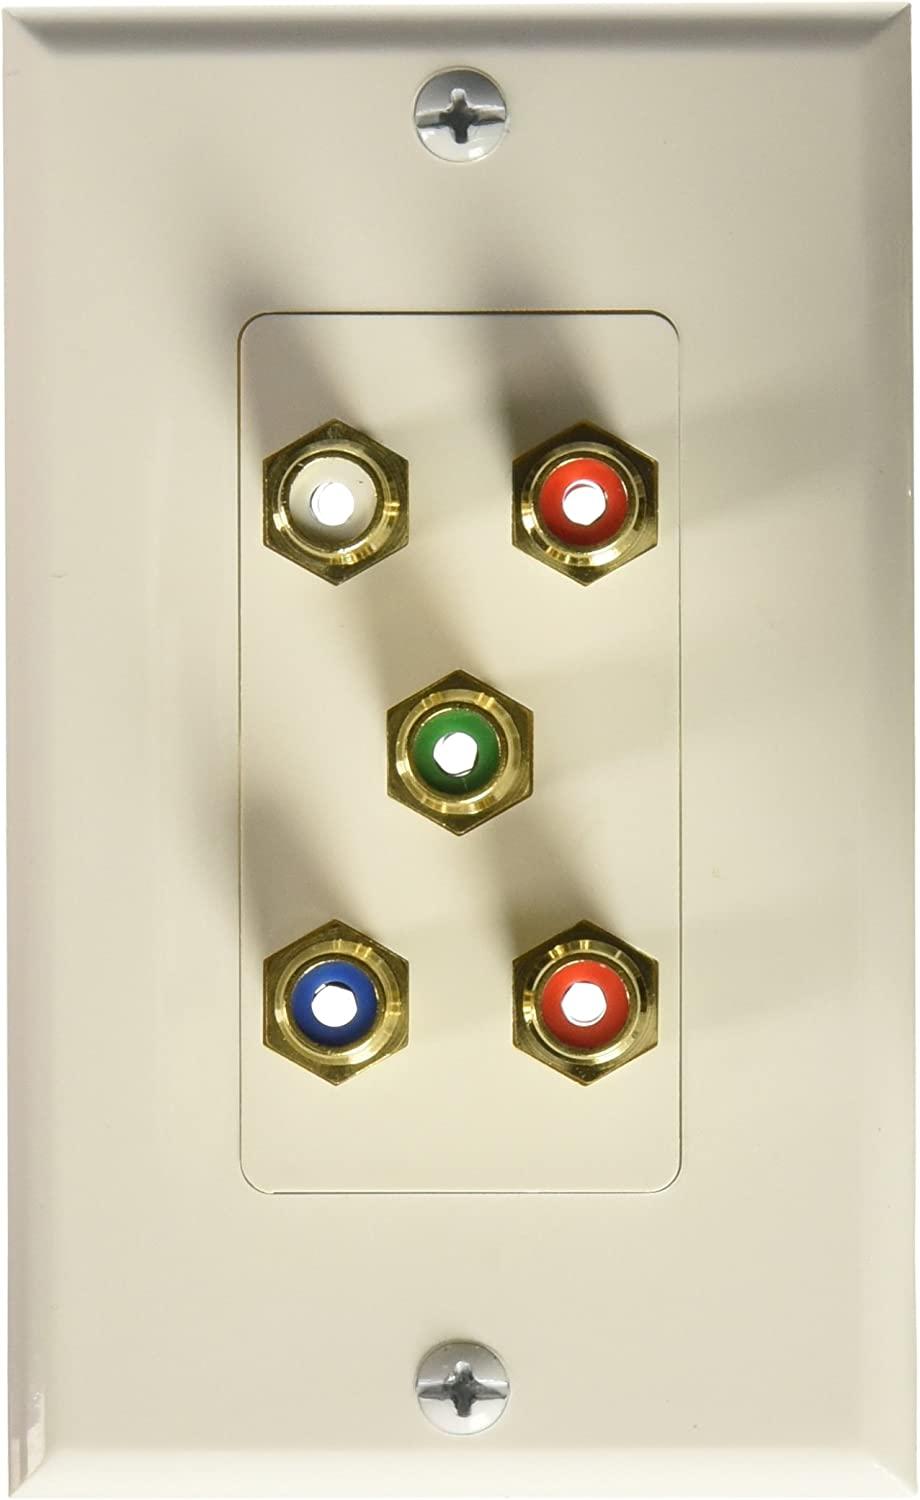 RGB and Audio Monoprice 102999 5 RCA Component Two-Piece inset Wall Plate